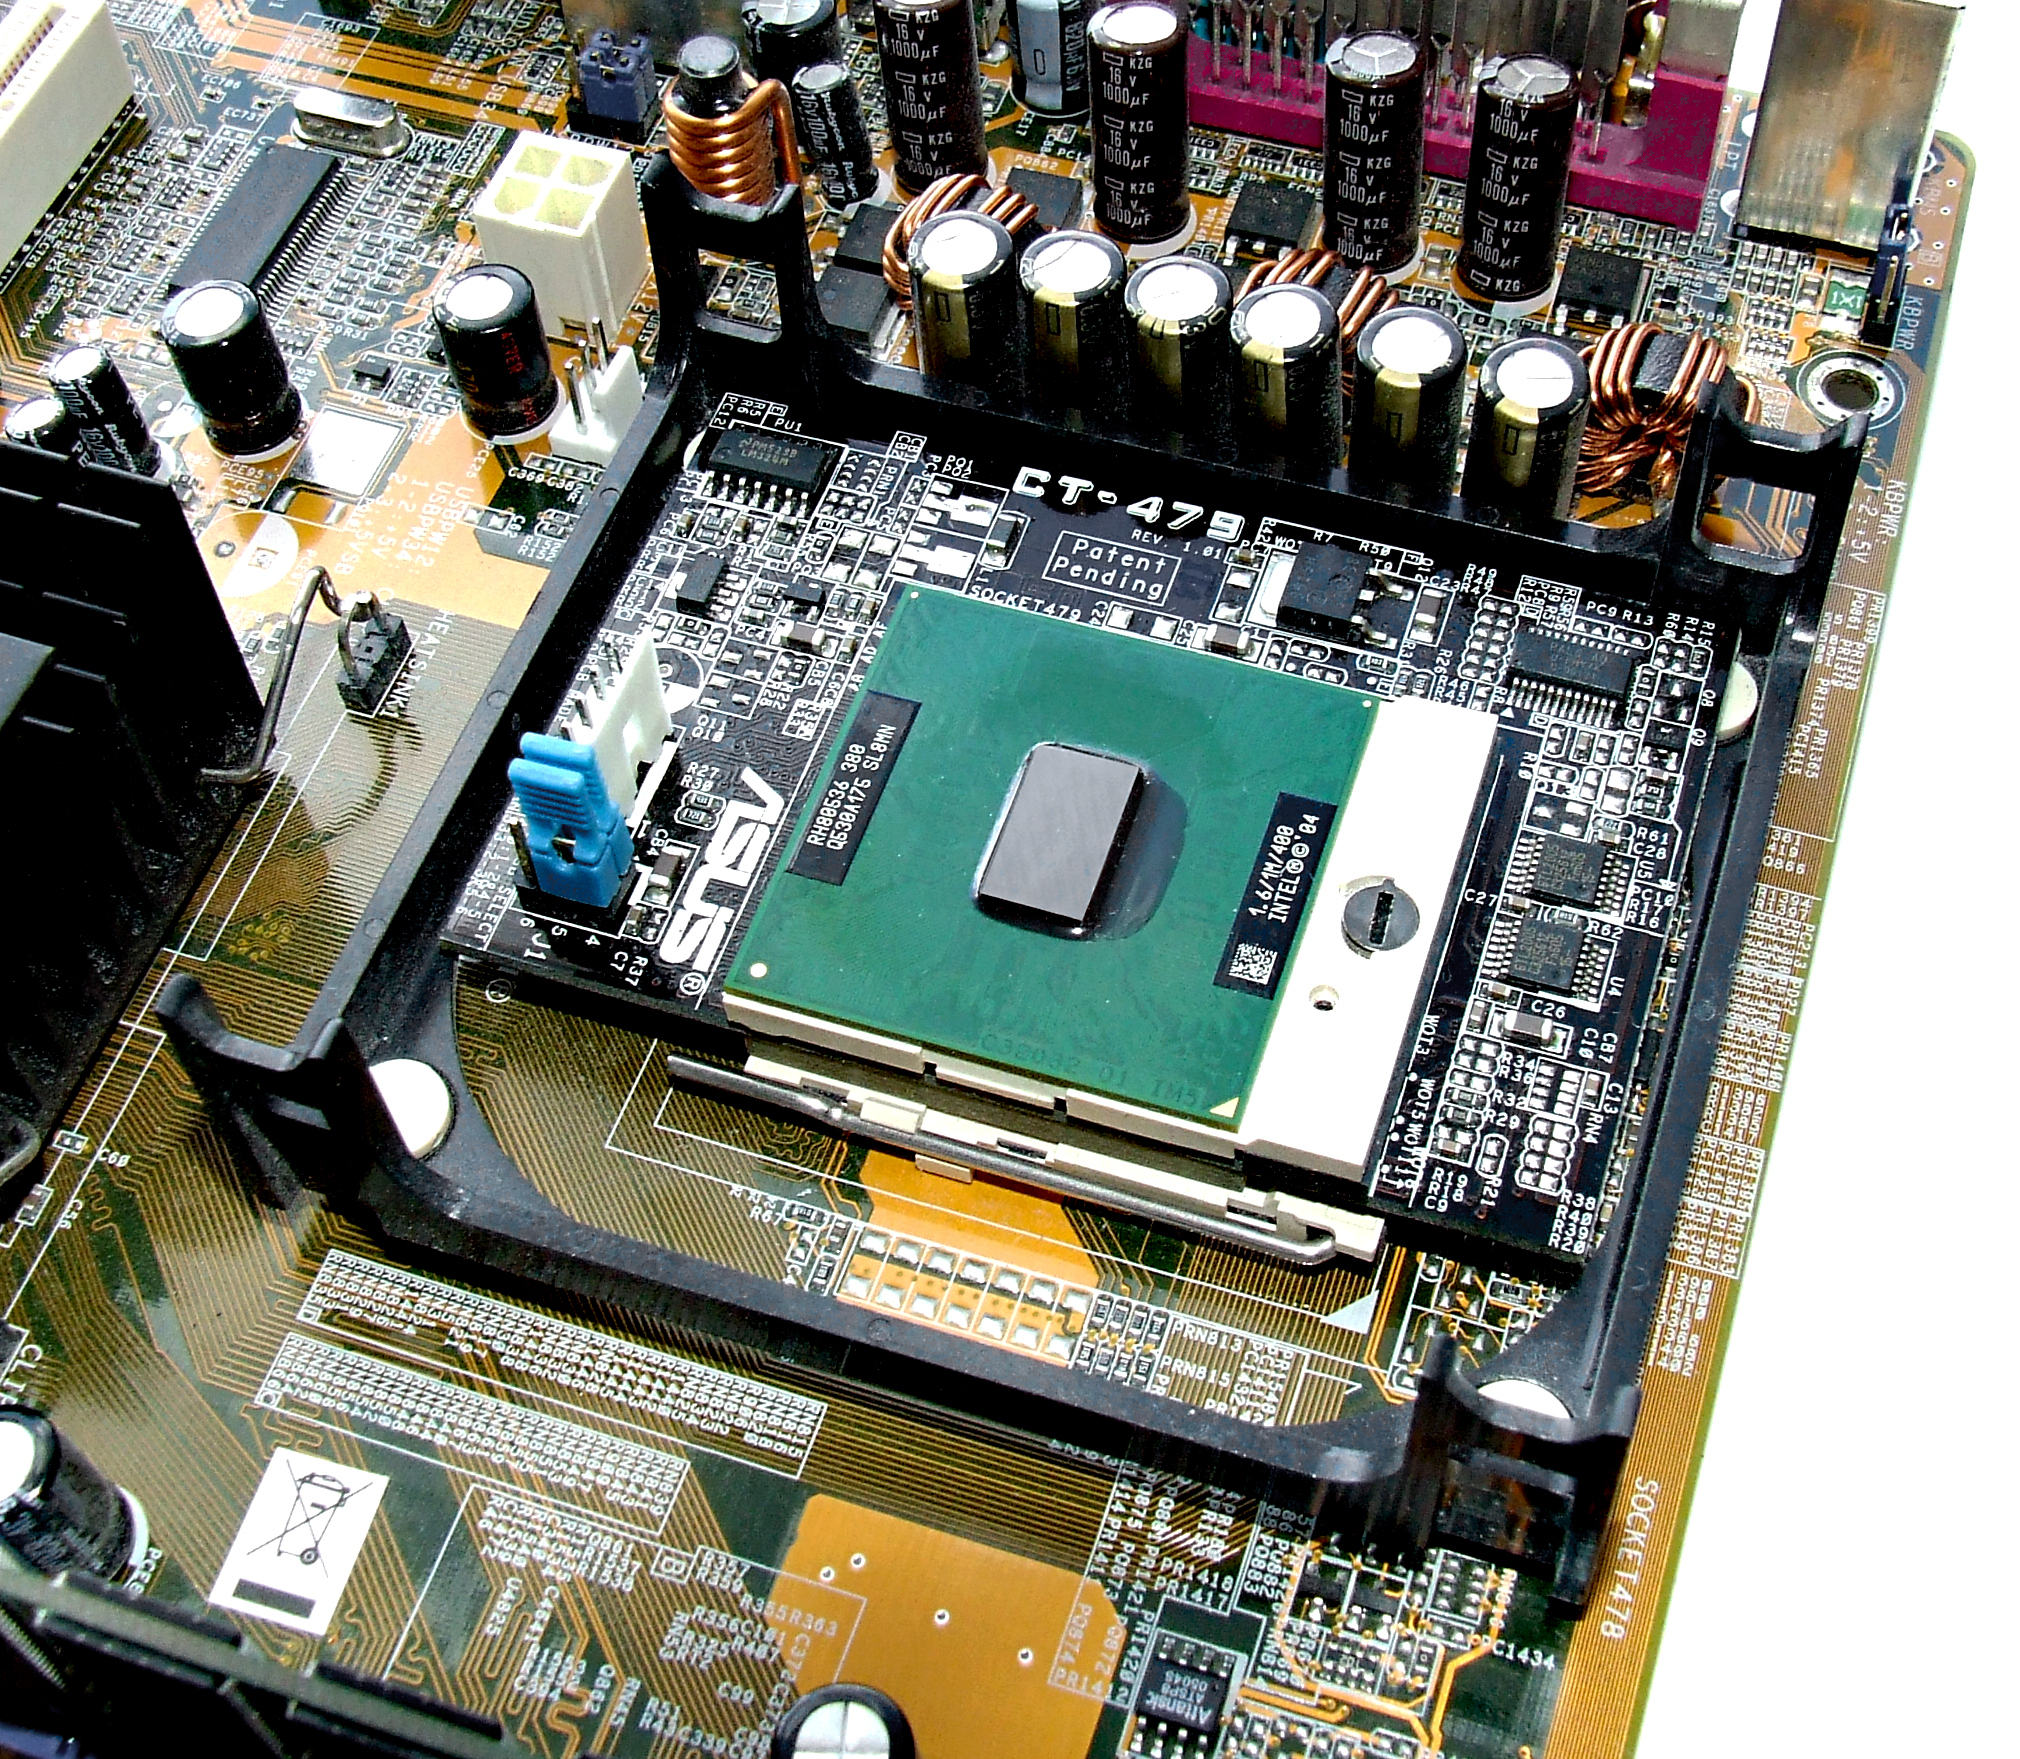 CT-479 installed on ASUS P4GPL-X motherboard